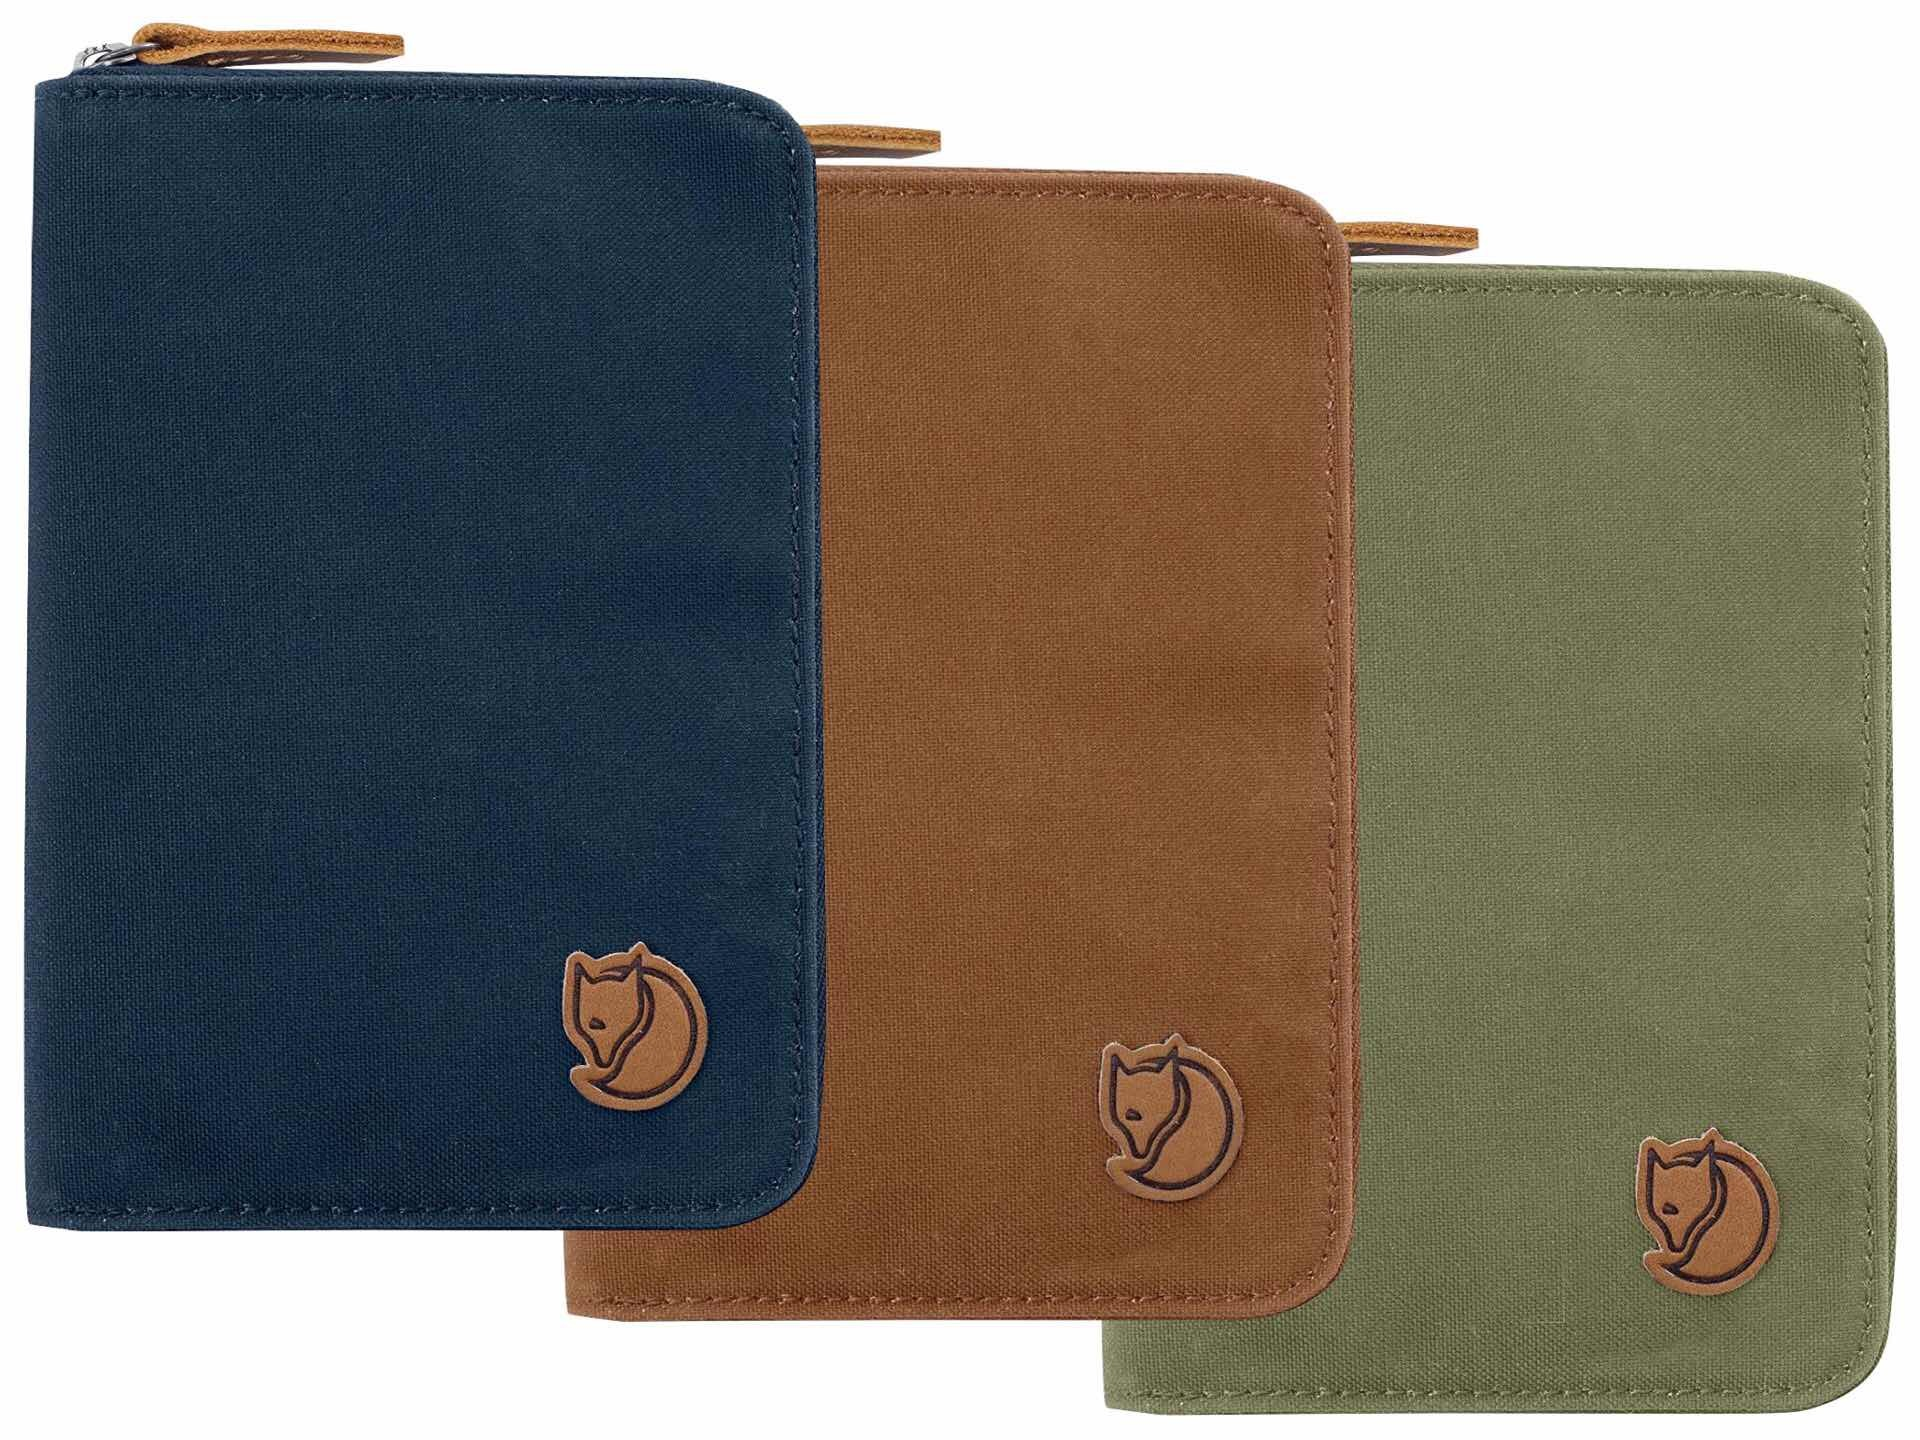 Fjllrven passport wallet. ($60, available in a variety of colors)